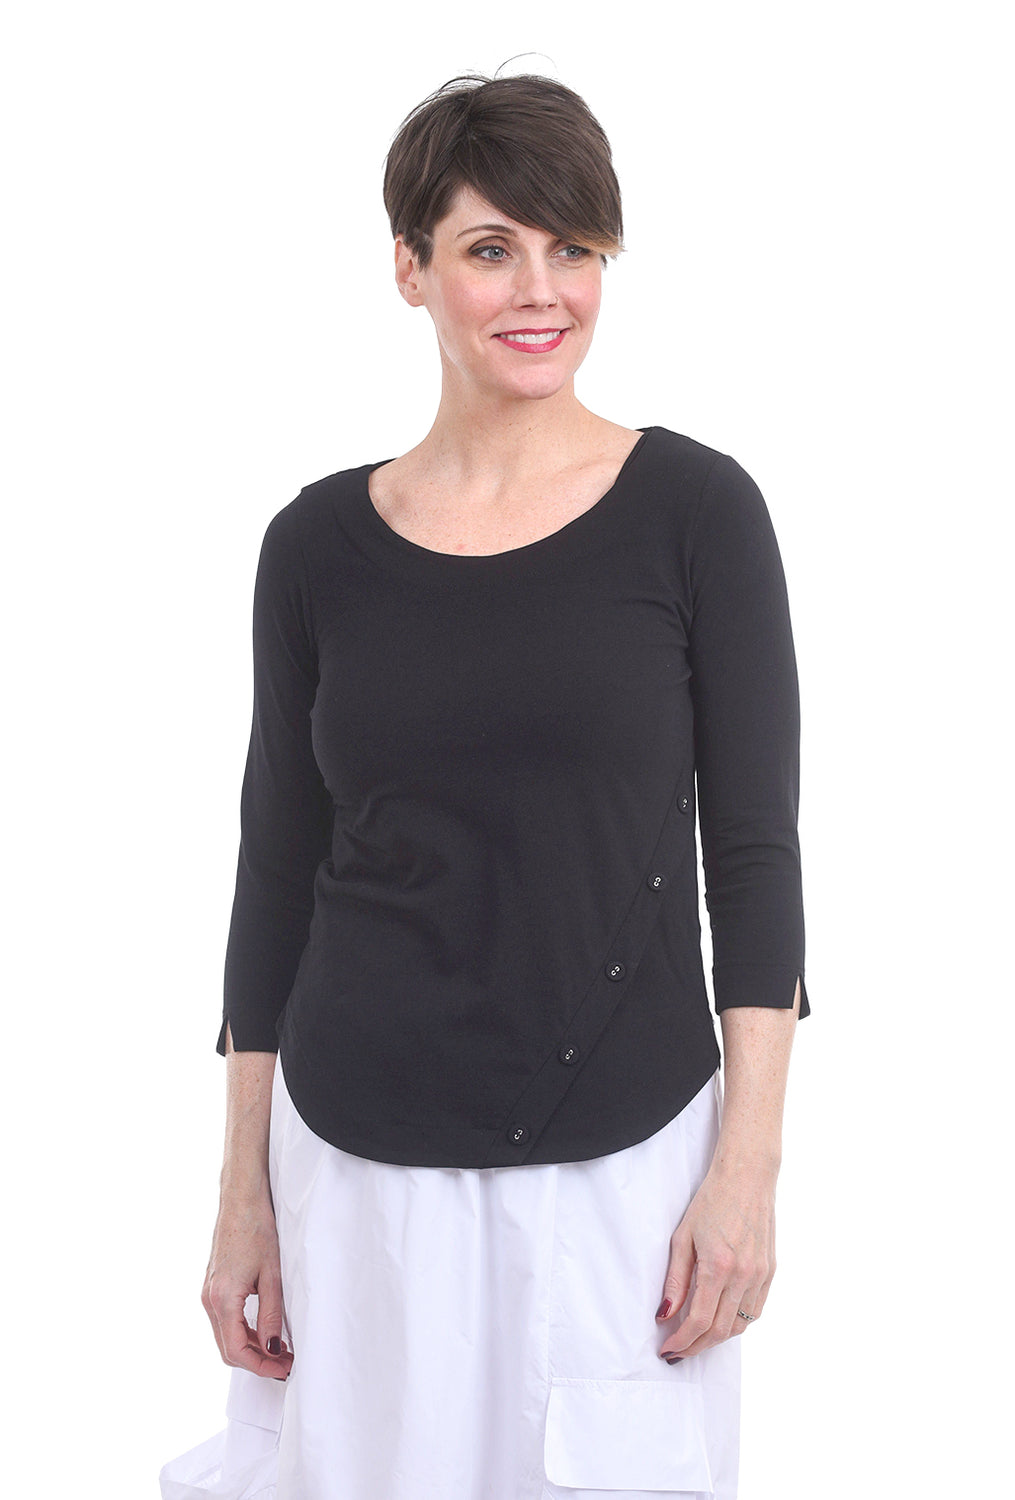 Luukaa Nikki Jersey Button Tee, Black